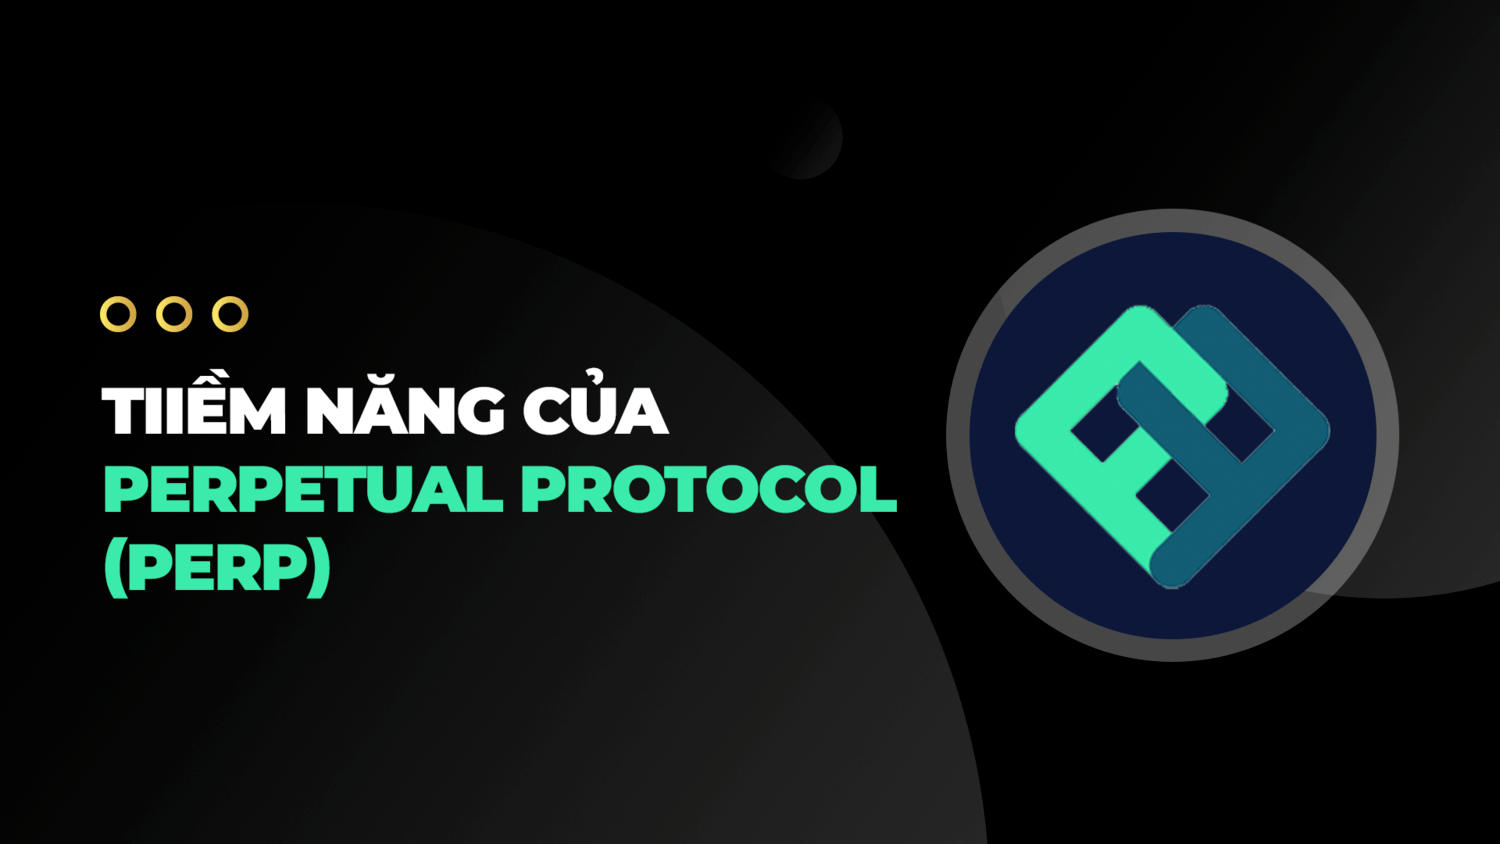 Tiềm năng của Perppetual Protocol (PERP)